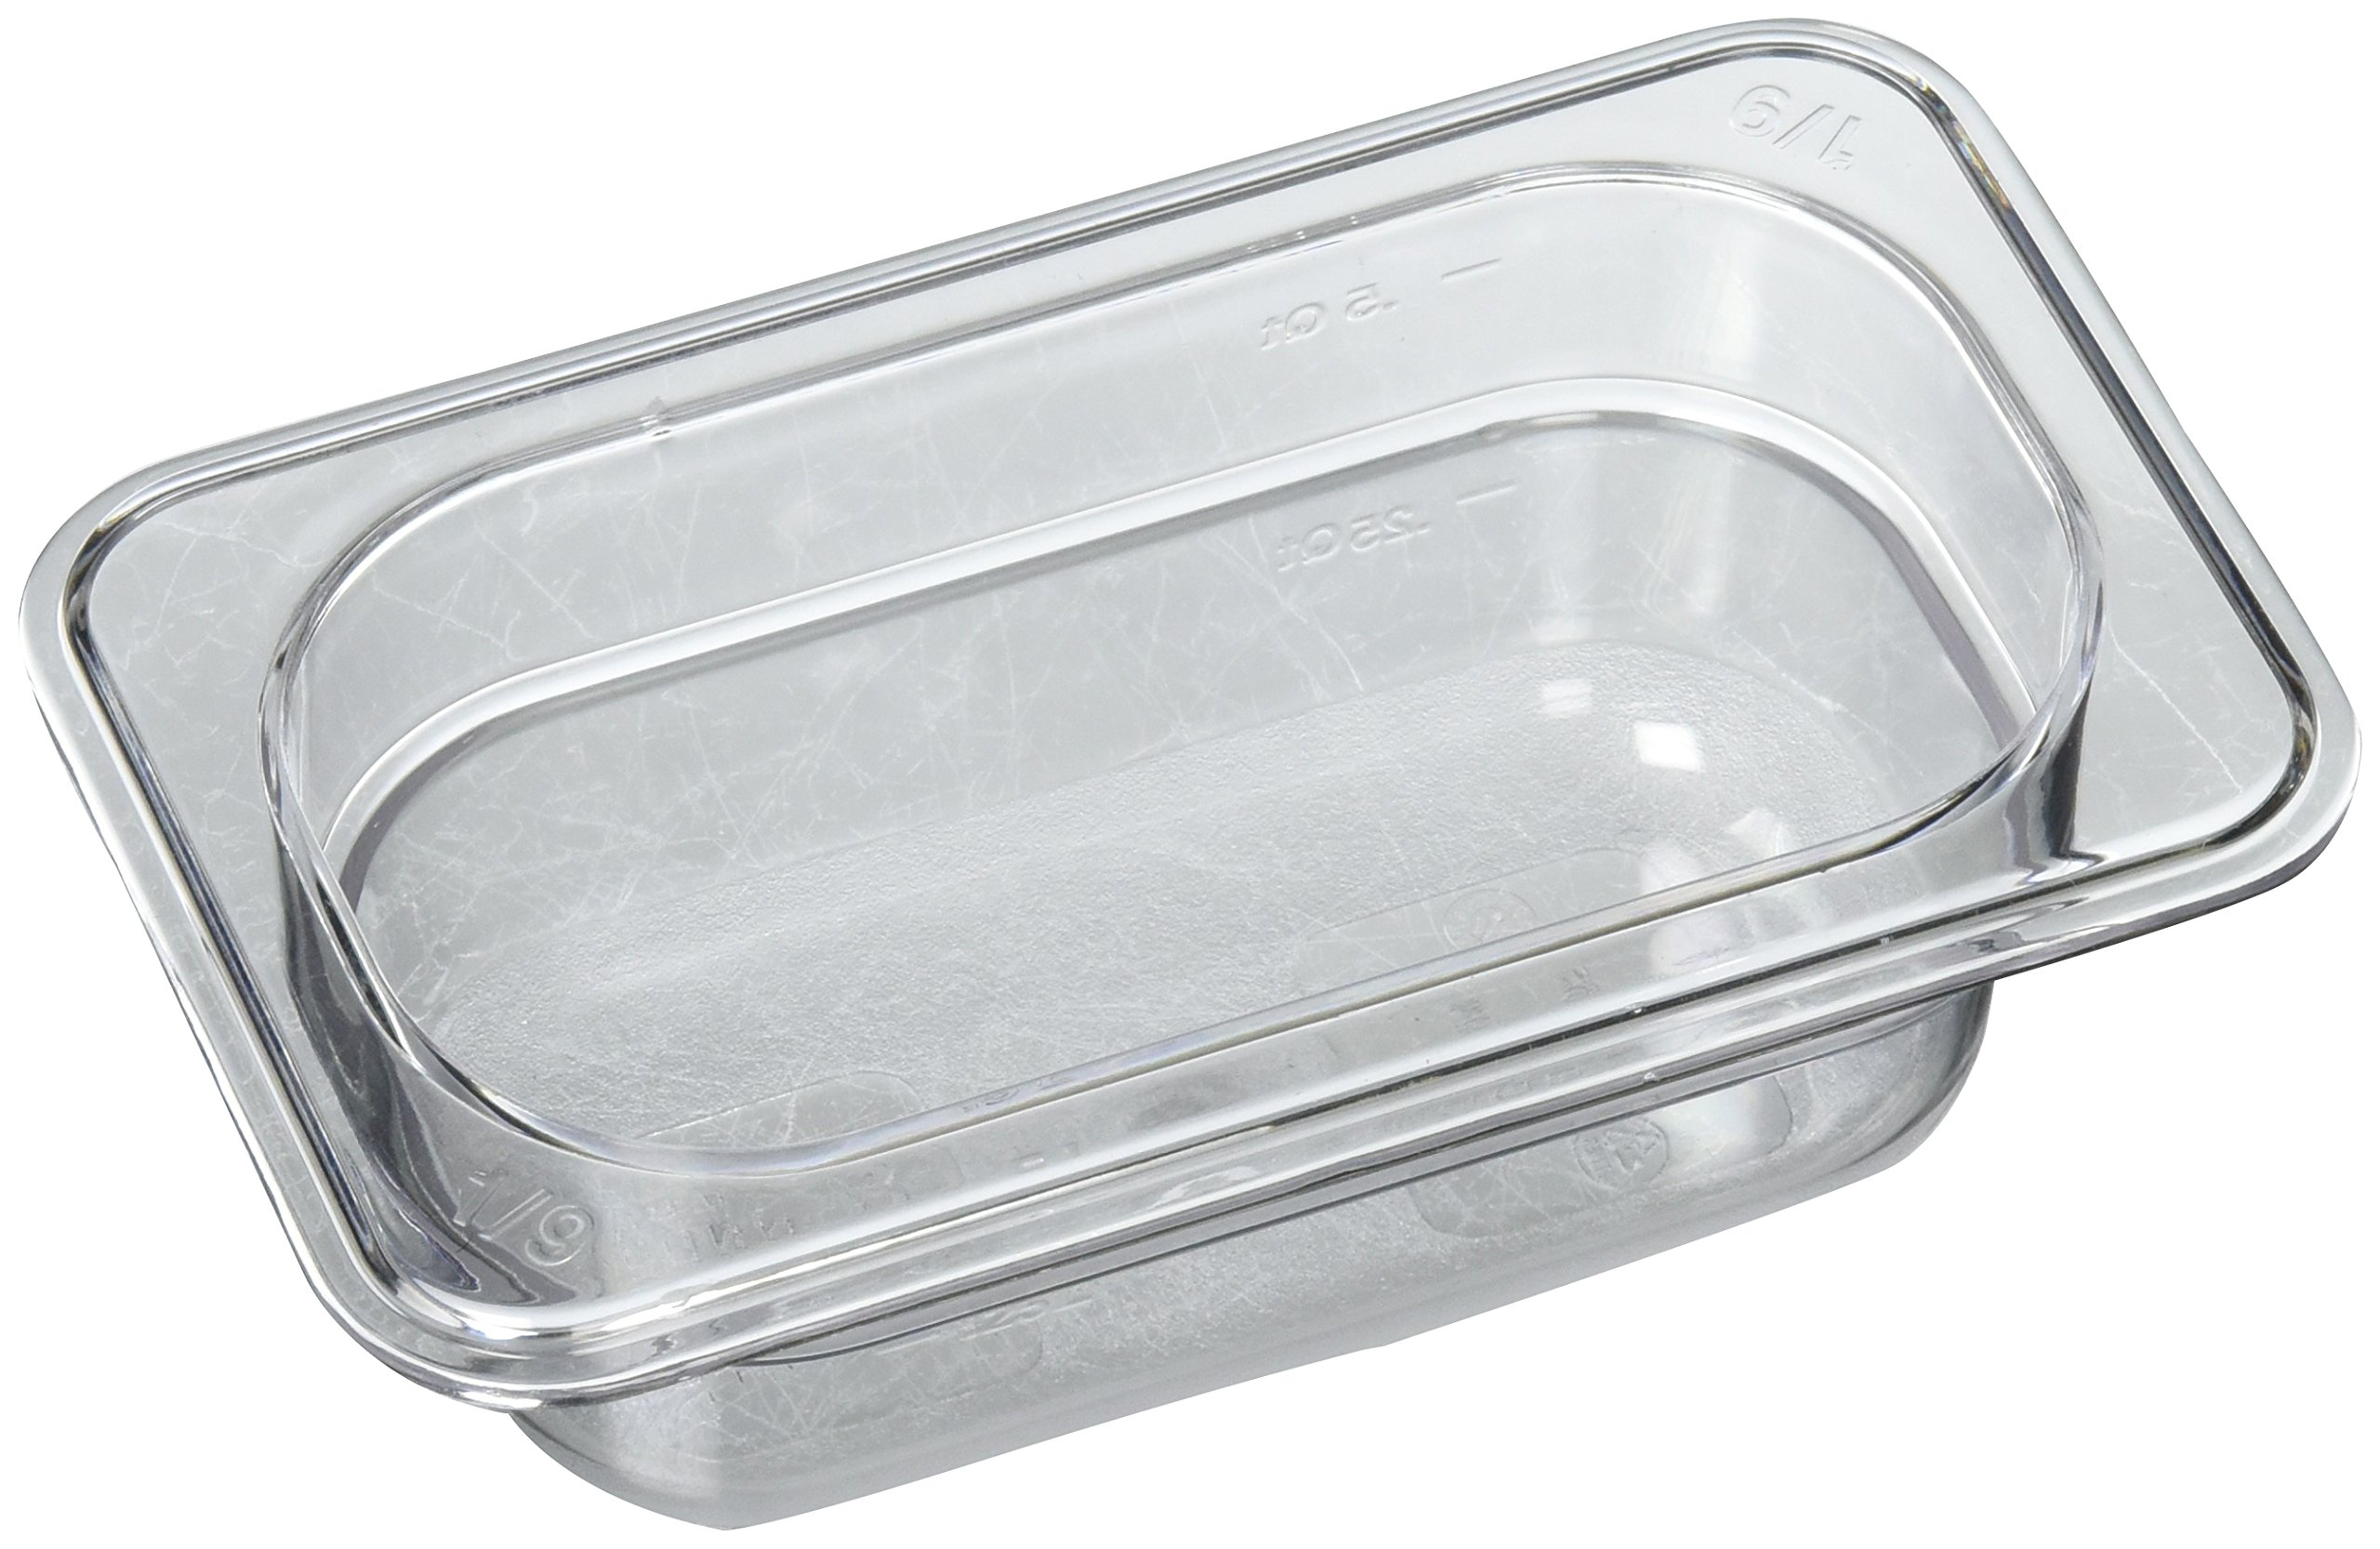 Winco SP7902 1/9 Size Pan, 2-1/2-Inch